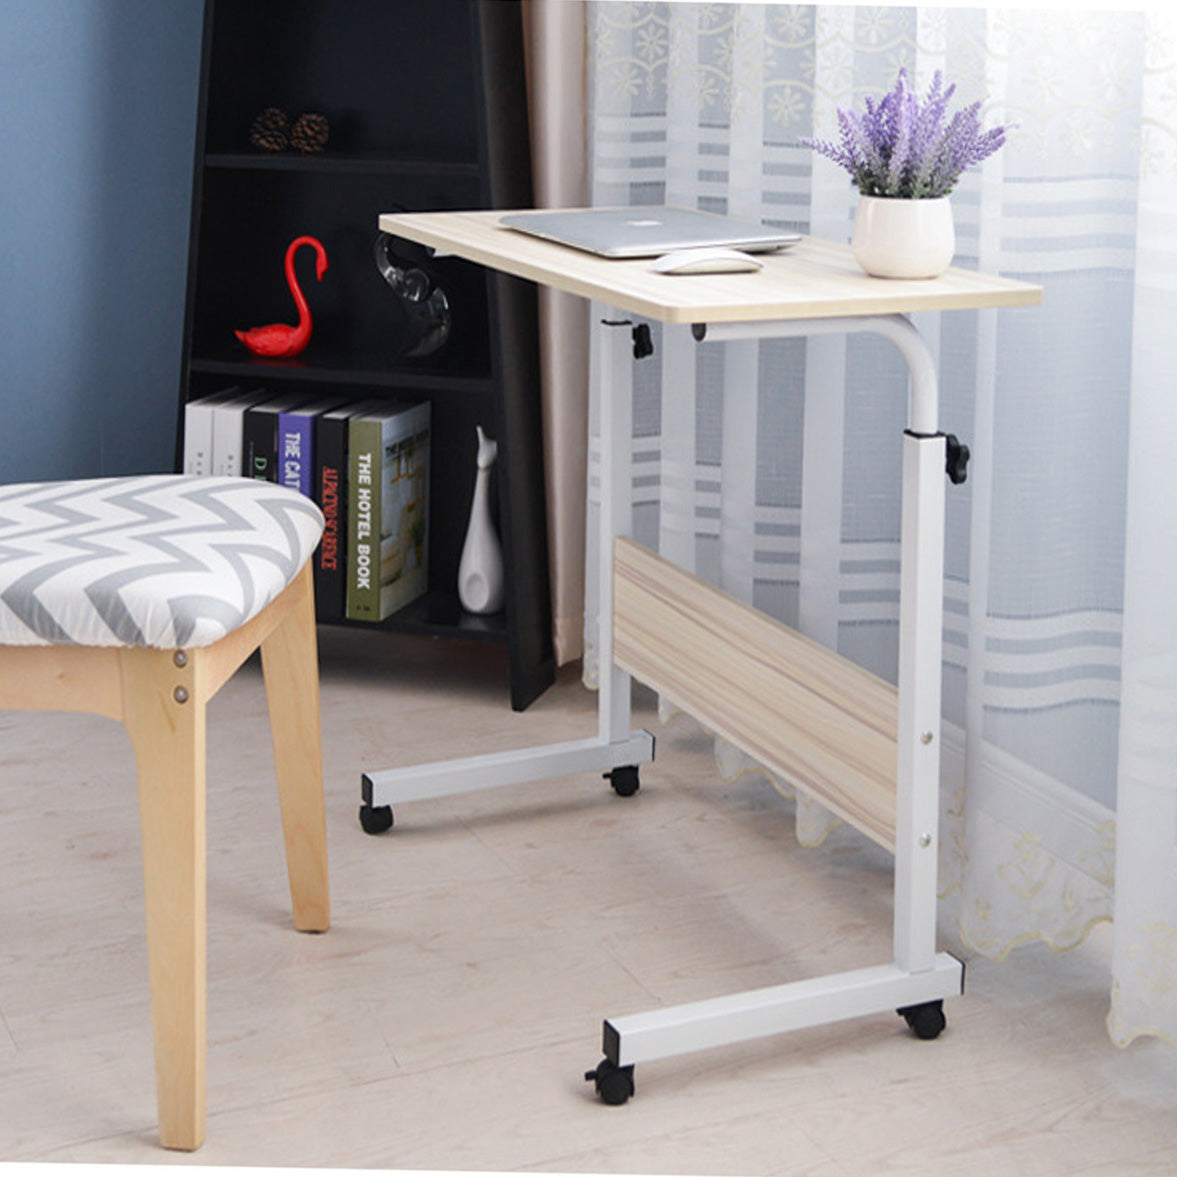 Portable Adjustable Folding Computer Desk for Working at Home